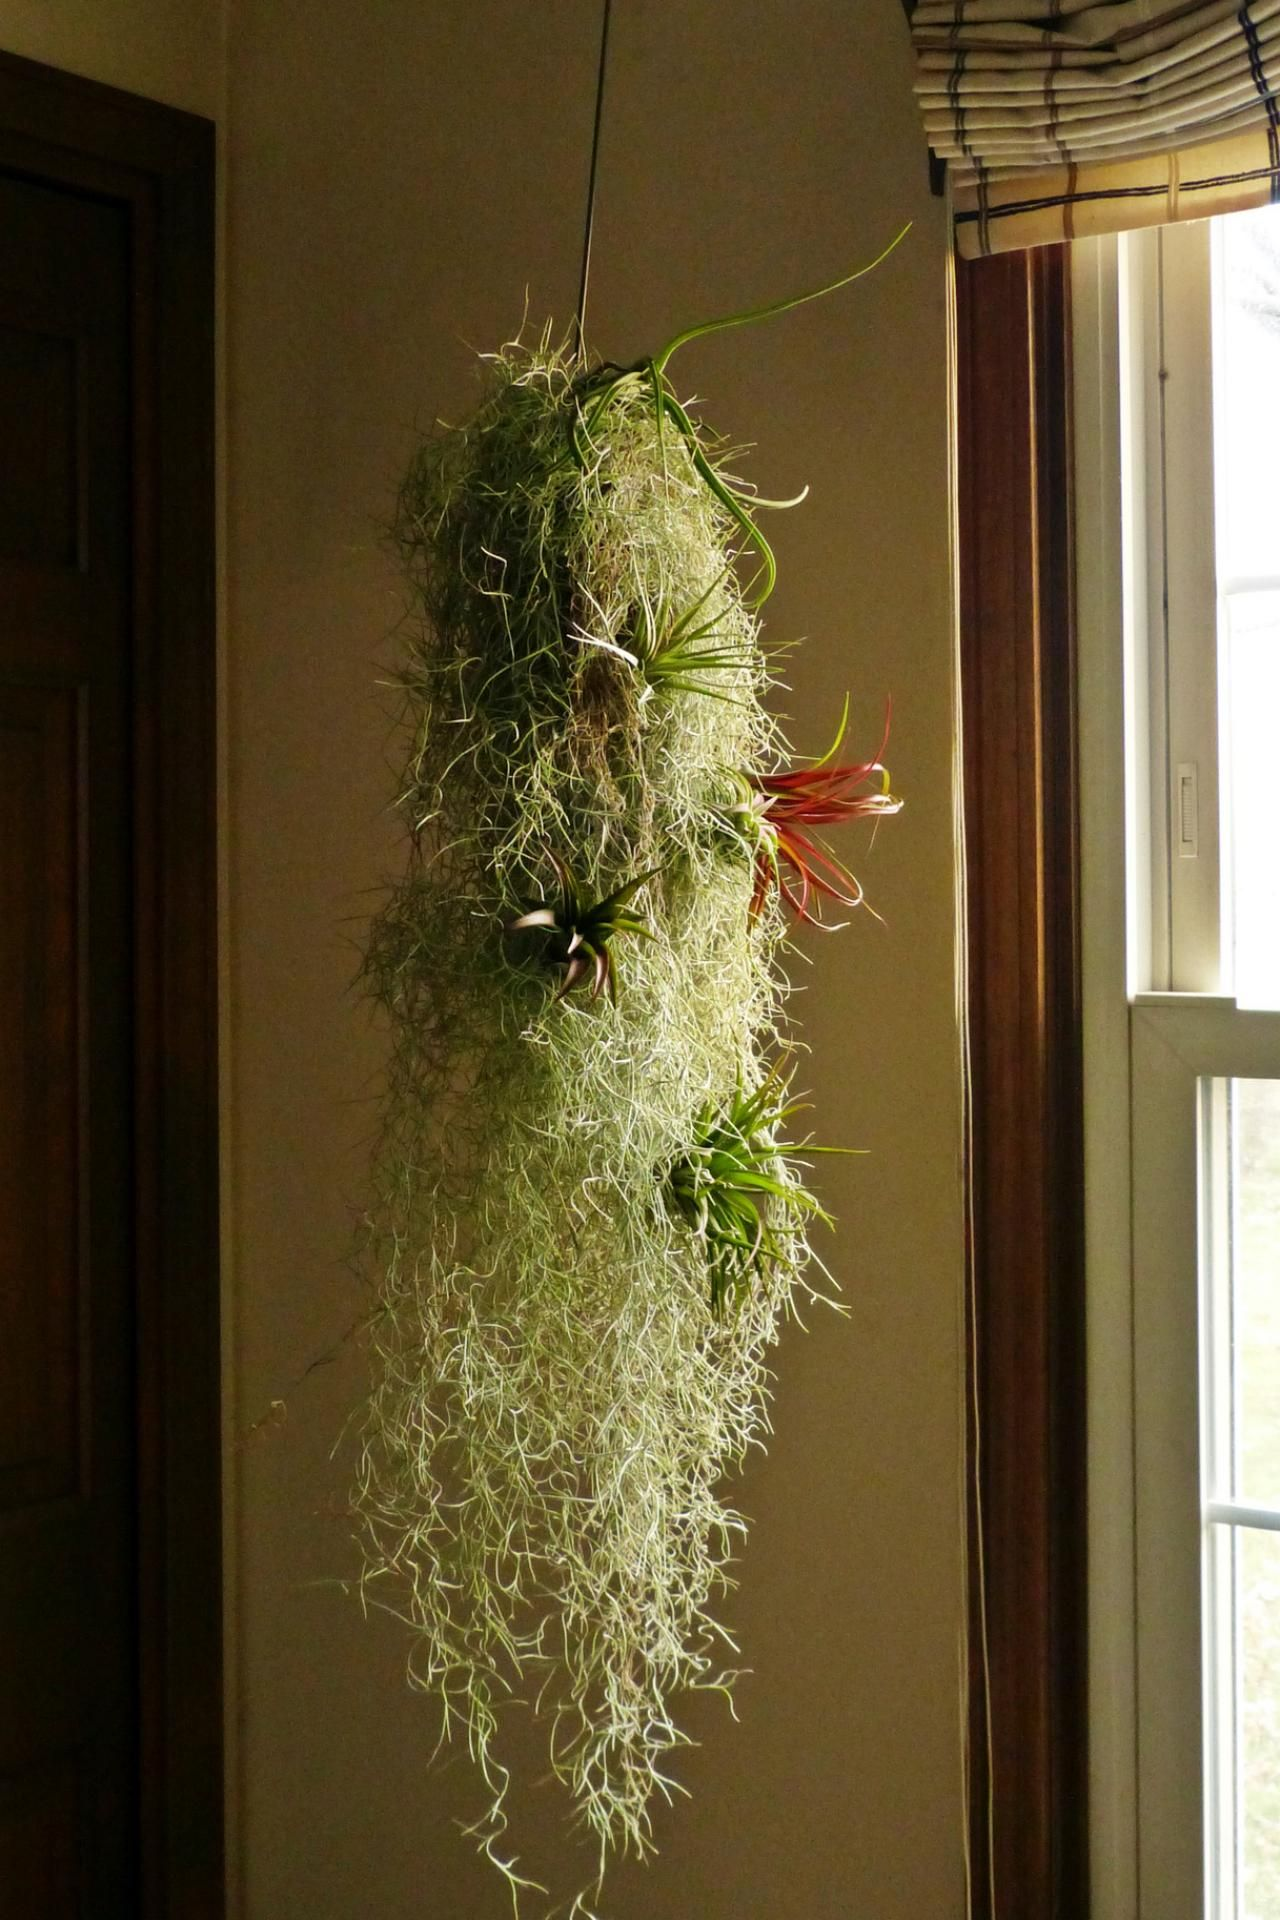 Pin by daisy trespach on flores e jardins pinterest air plants